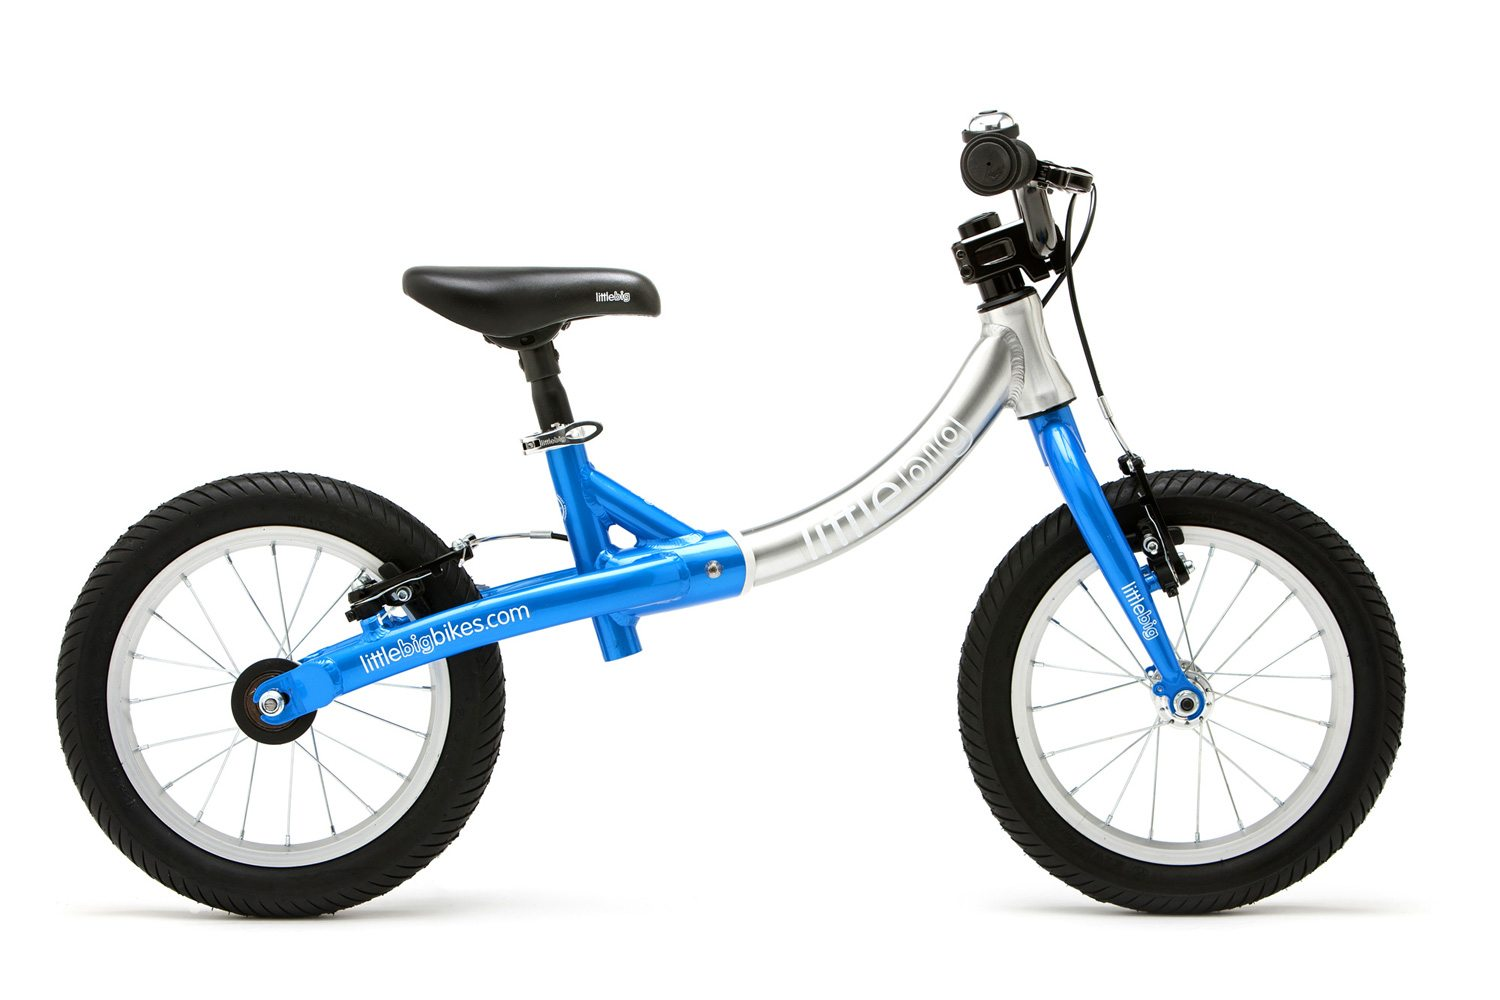 LittleBig big balance bike, Electric Blue - side view